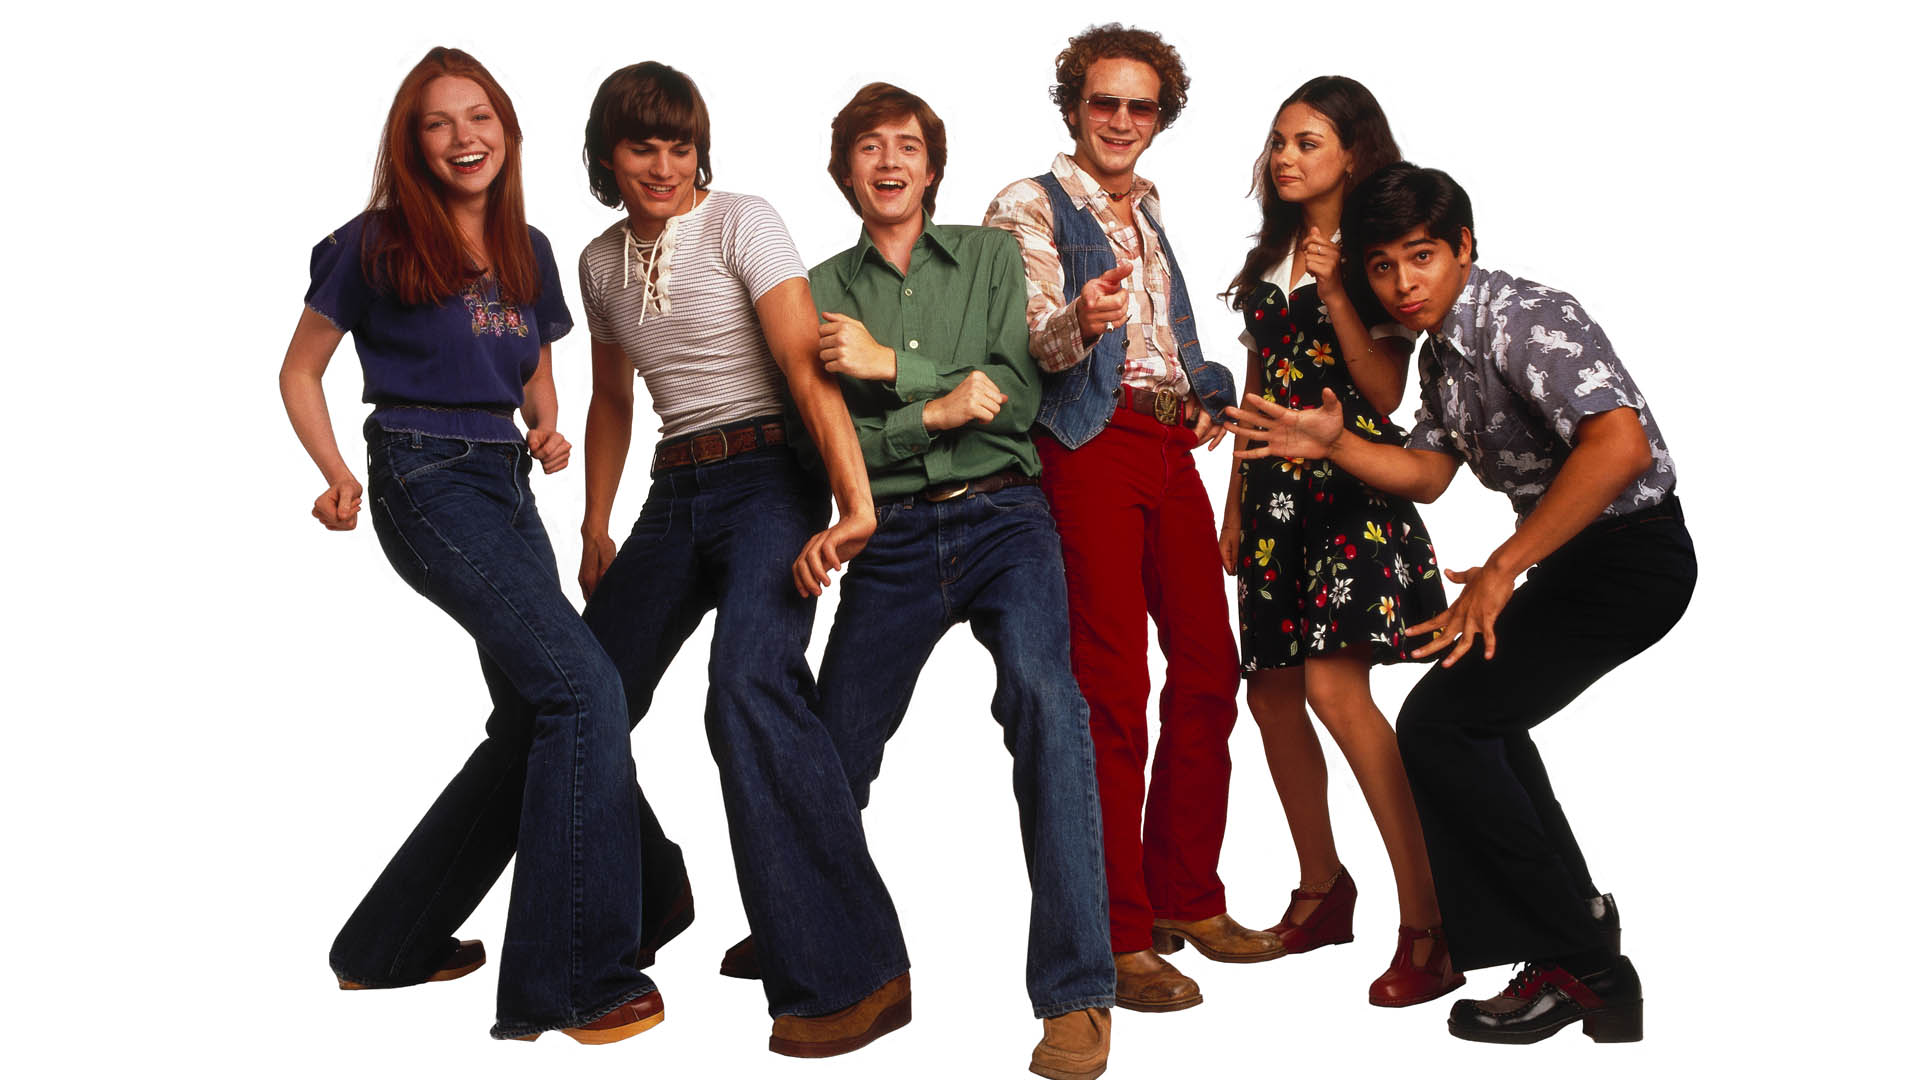 Wallpaper   That 70s Show Wallpaper 32443981 1920x1080